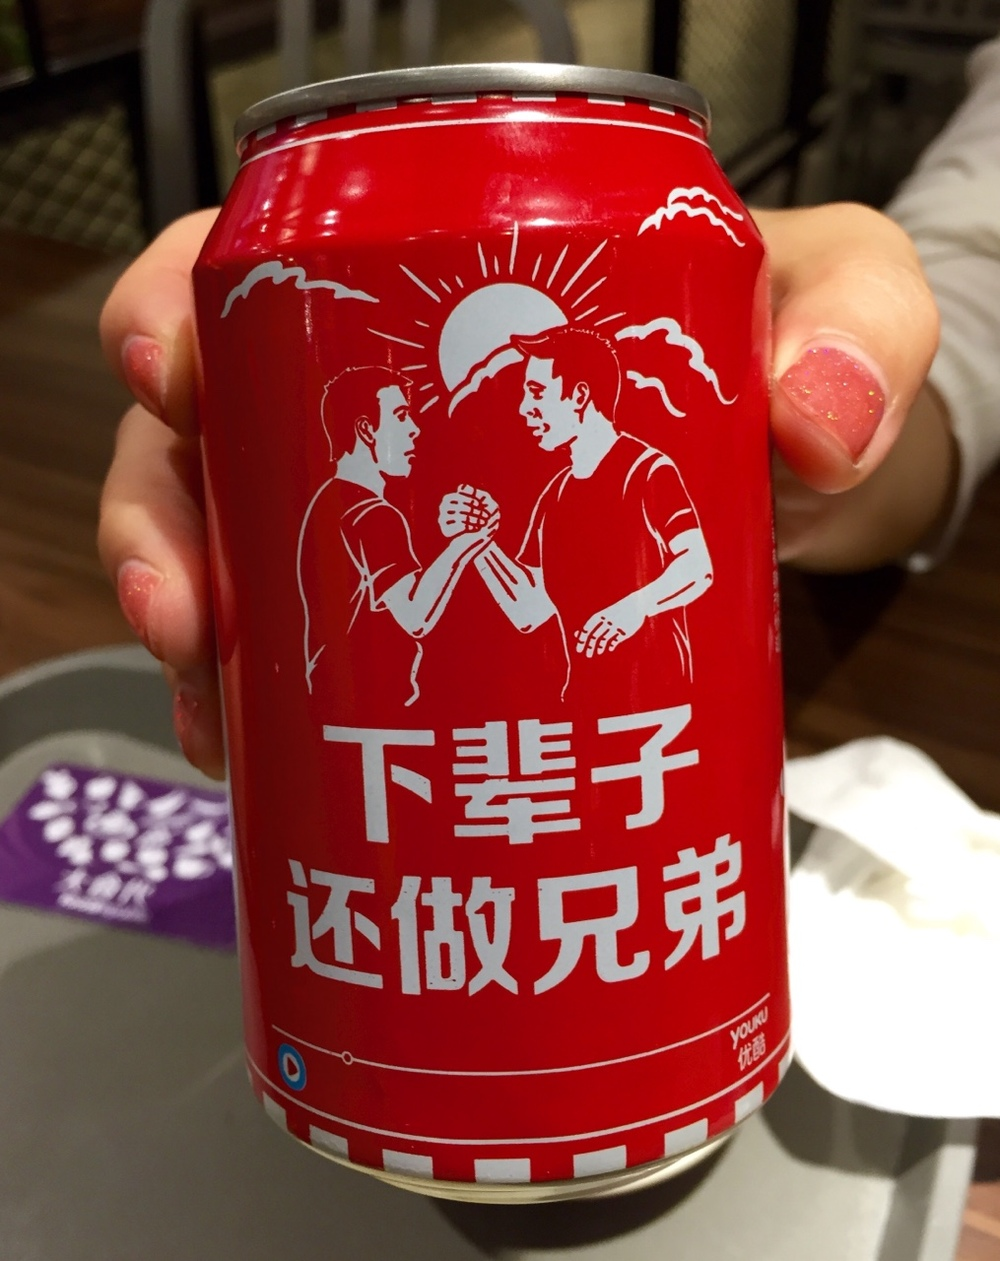 """This basically says """"hey man, we'll be brothers in another life"""". Found on a coke can in Beijing, which I thought was unique because only in Asia do they have the widespread belief of reincarnation. This would never be written on a coke can in the western world. So here you go, something unique from China"""